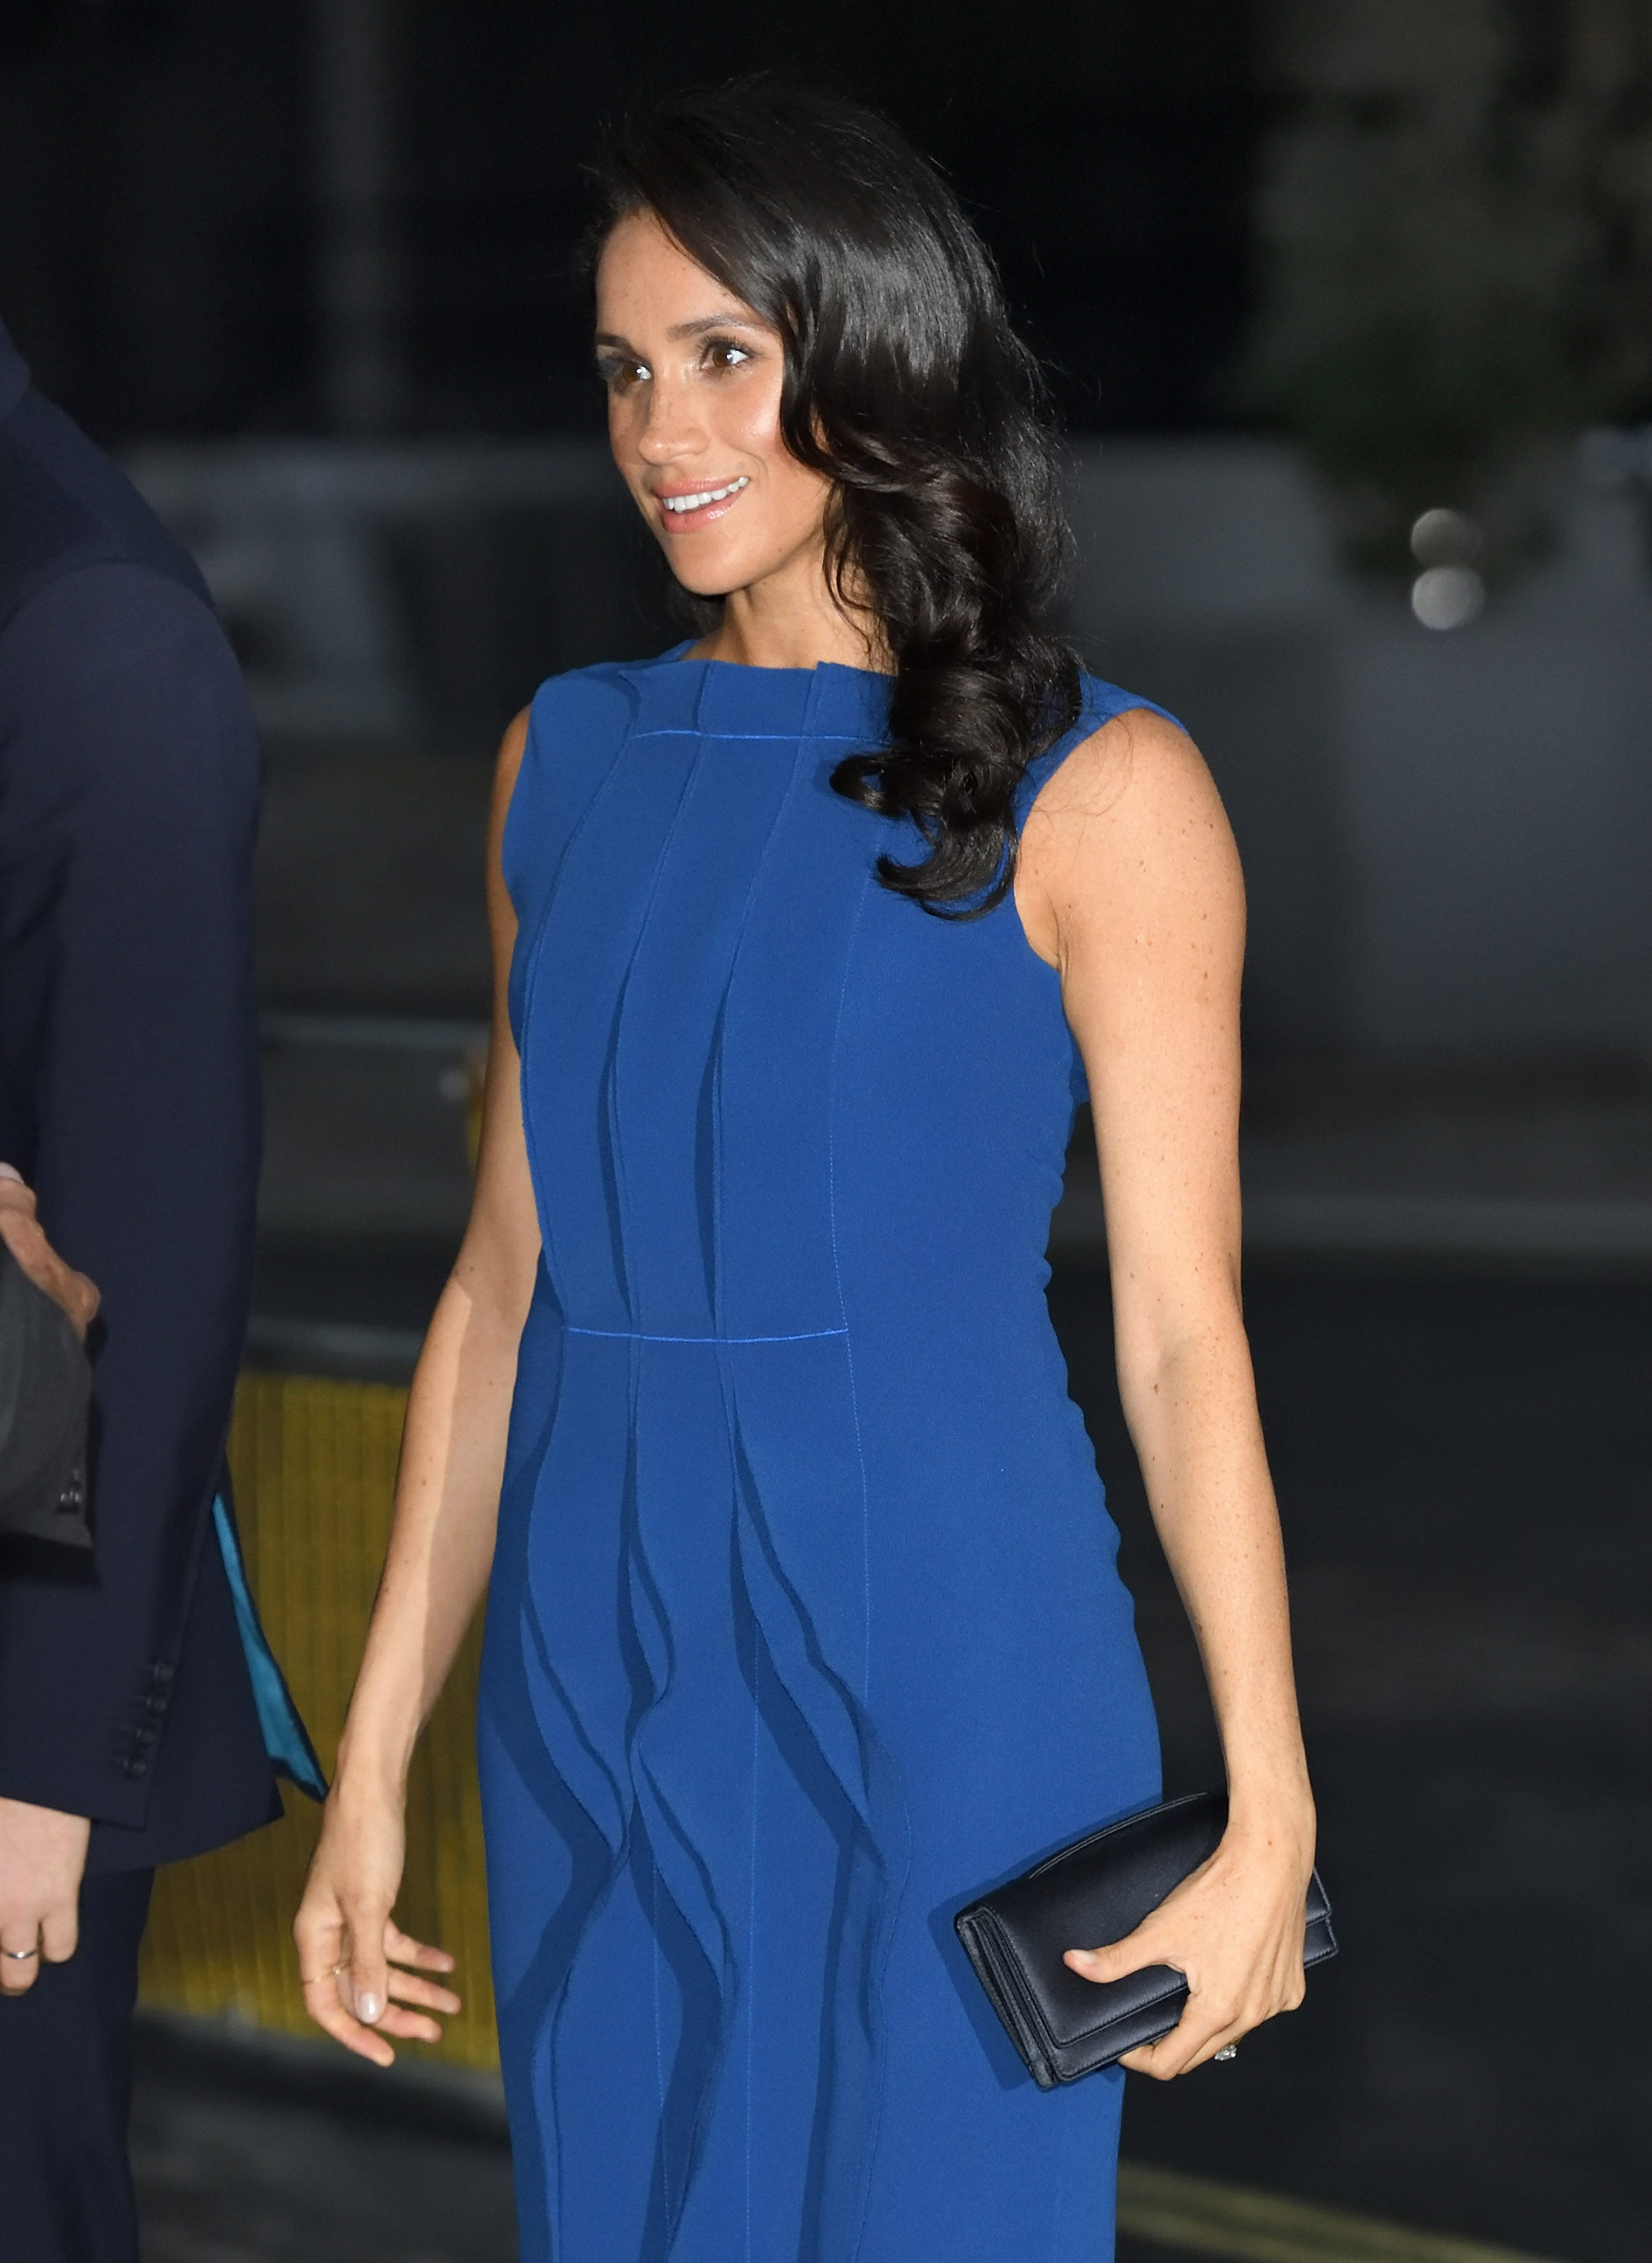 is duchess meghan pregnant twitter and tabloids claim to know is duchess meghan pregnant twitter and